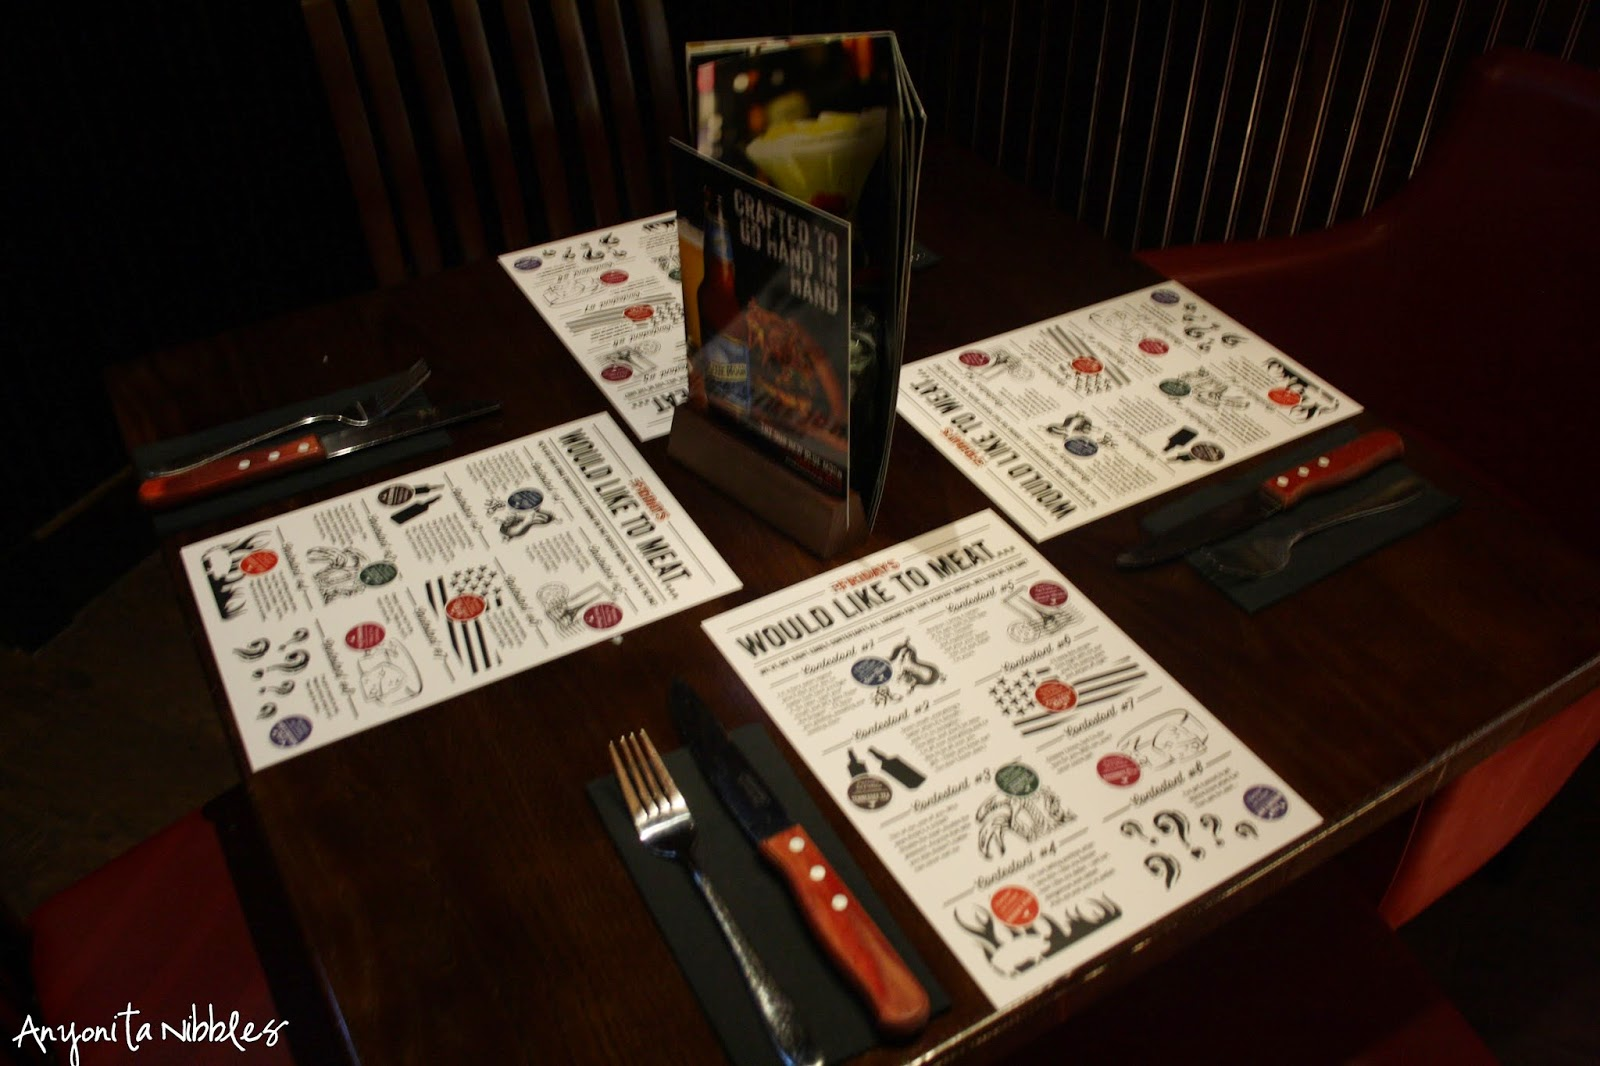 The burger blind date: an event from TGI Friday's